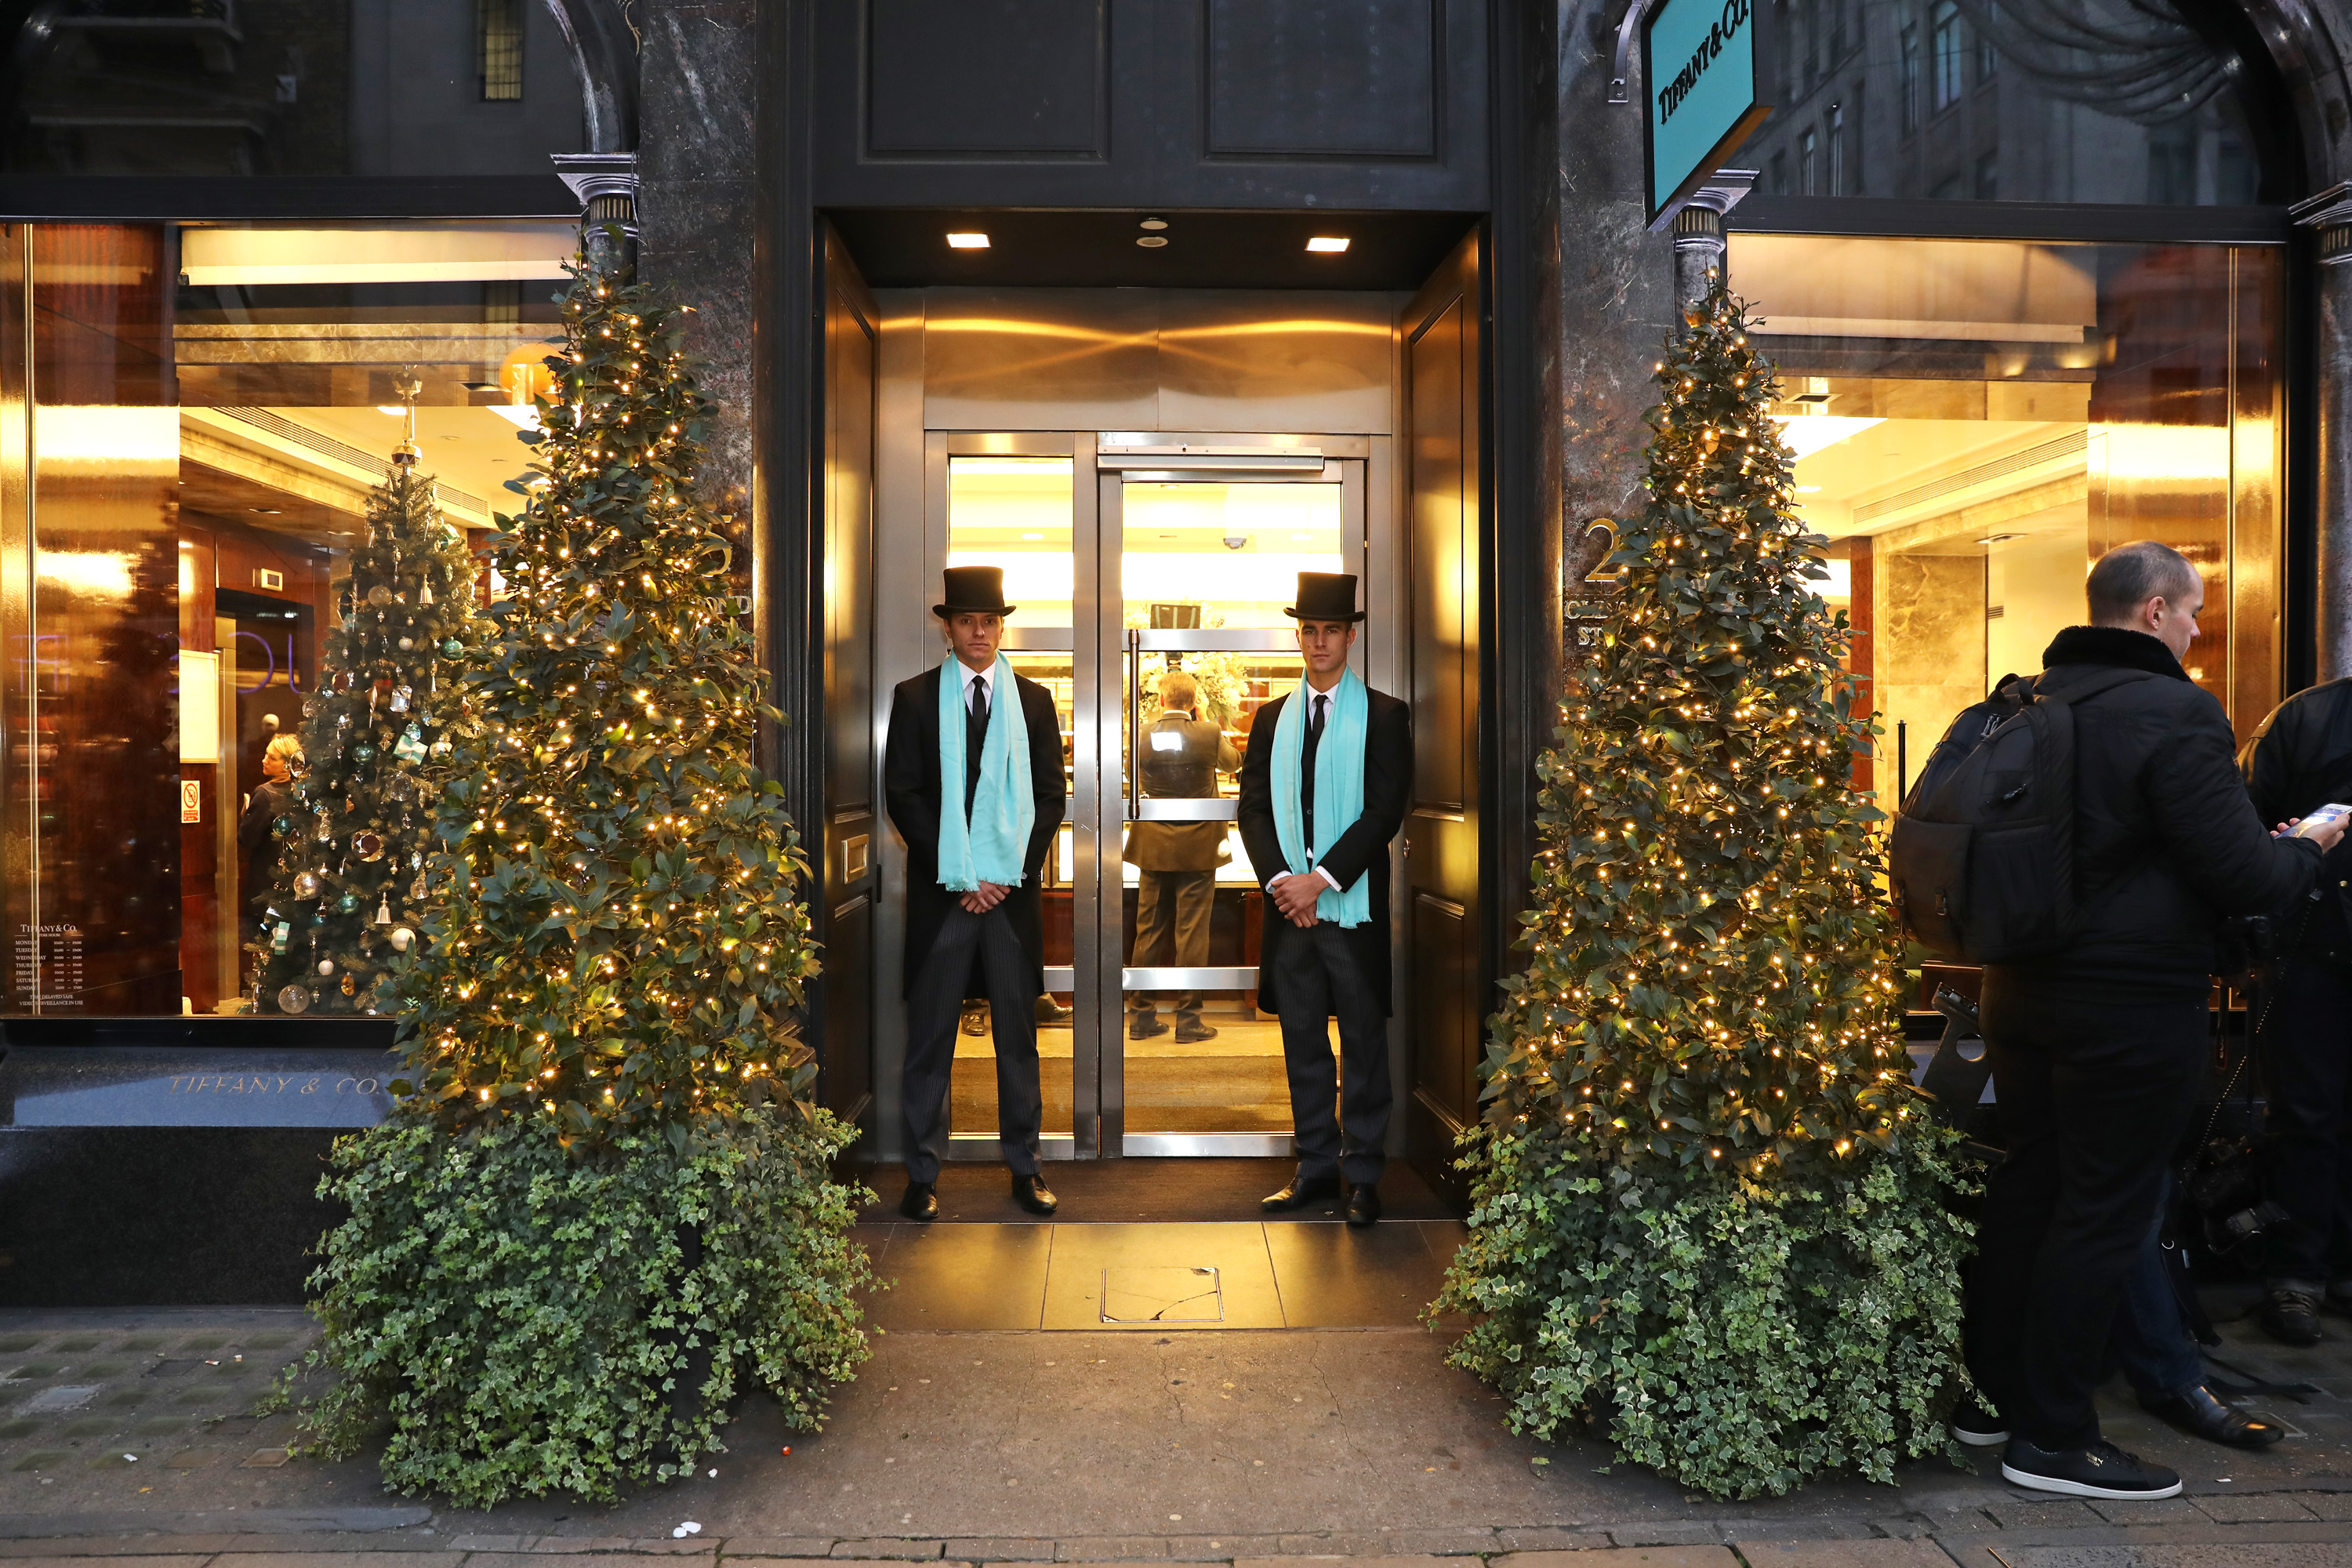 Fear not: Tiffany & Co. is still doing their iconic holiday display even though Secret Service has taken over their block